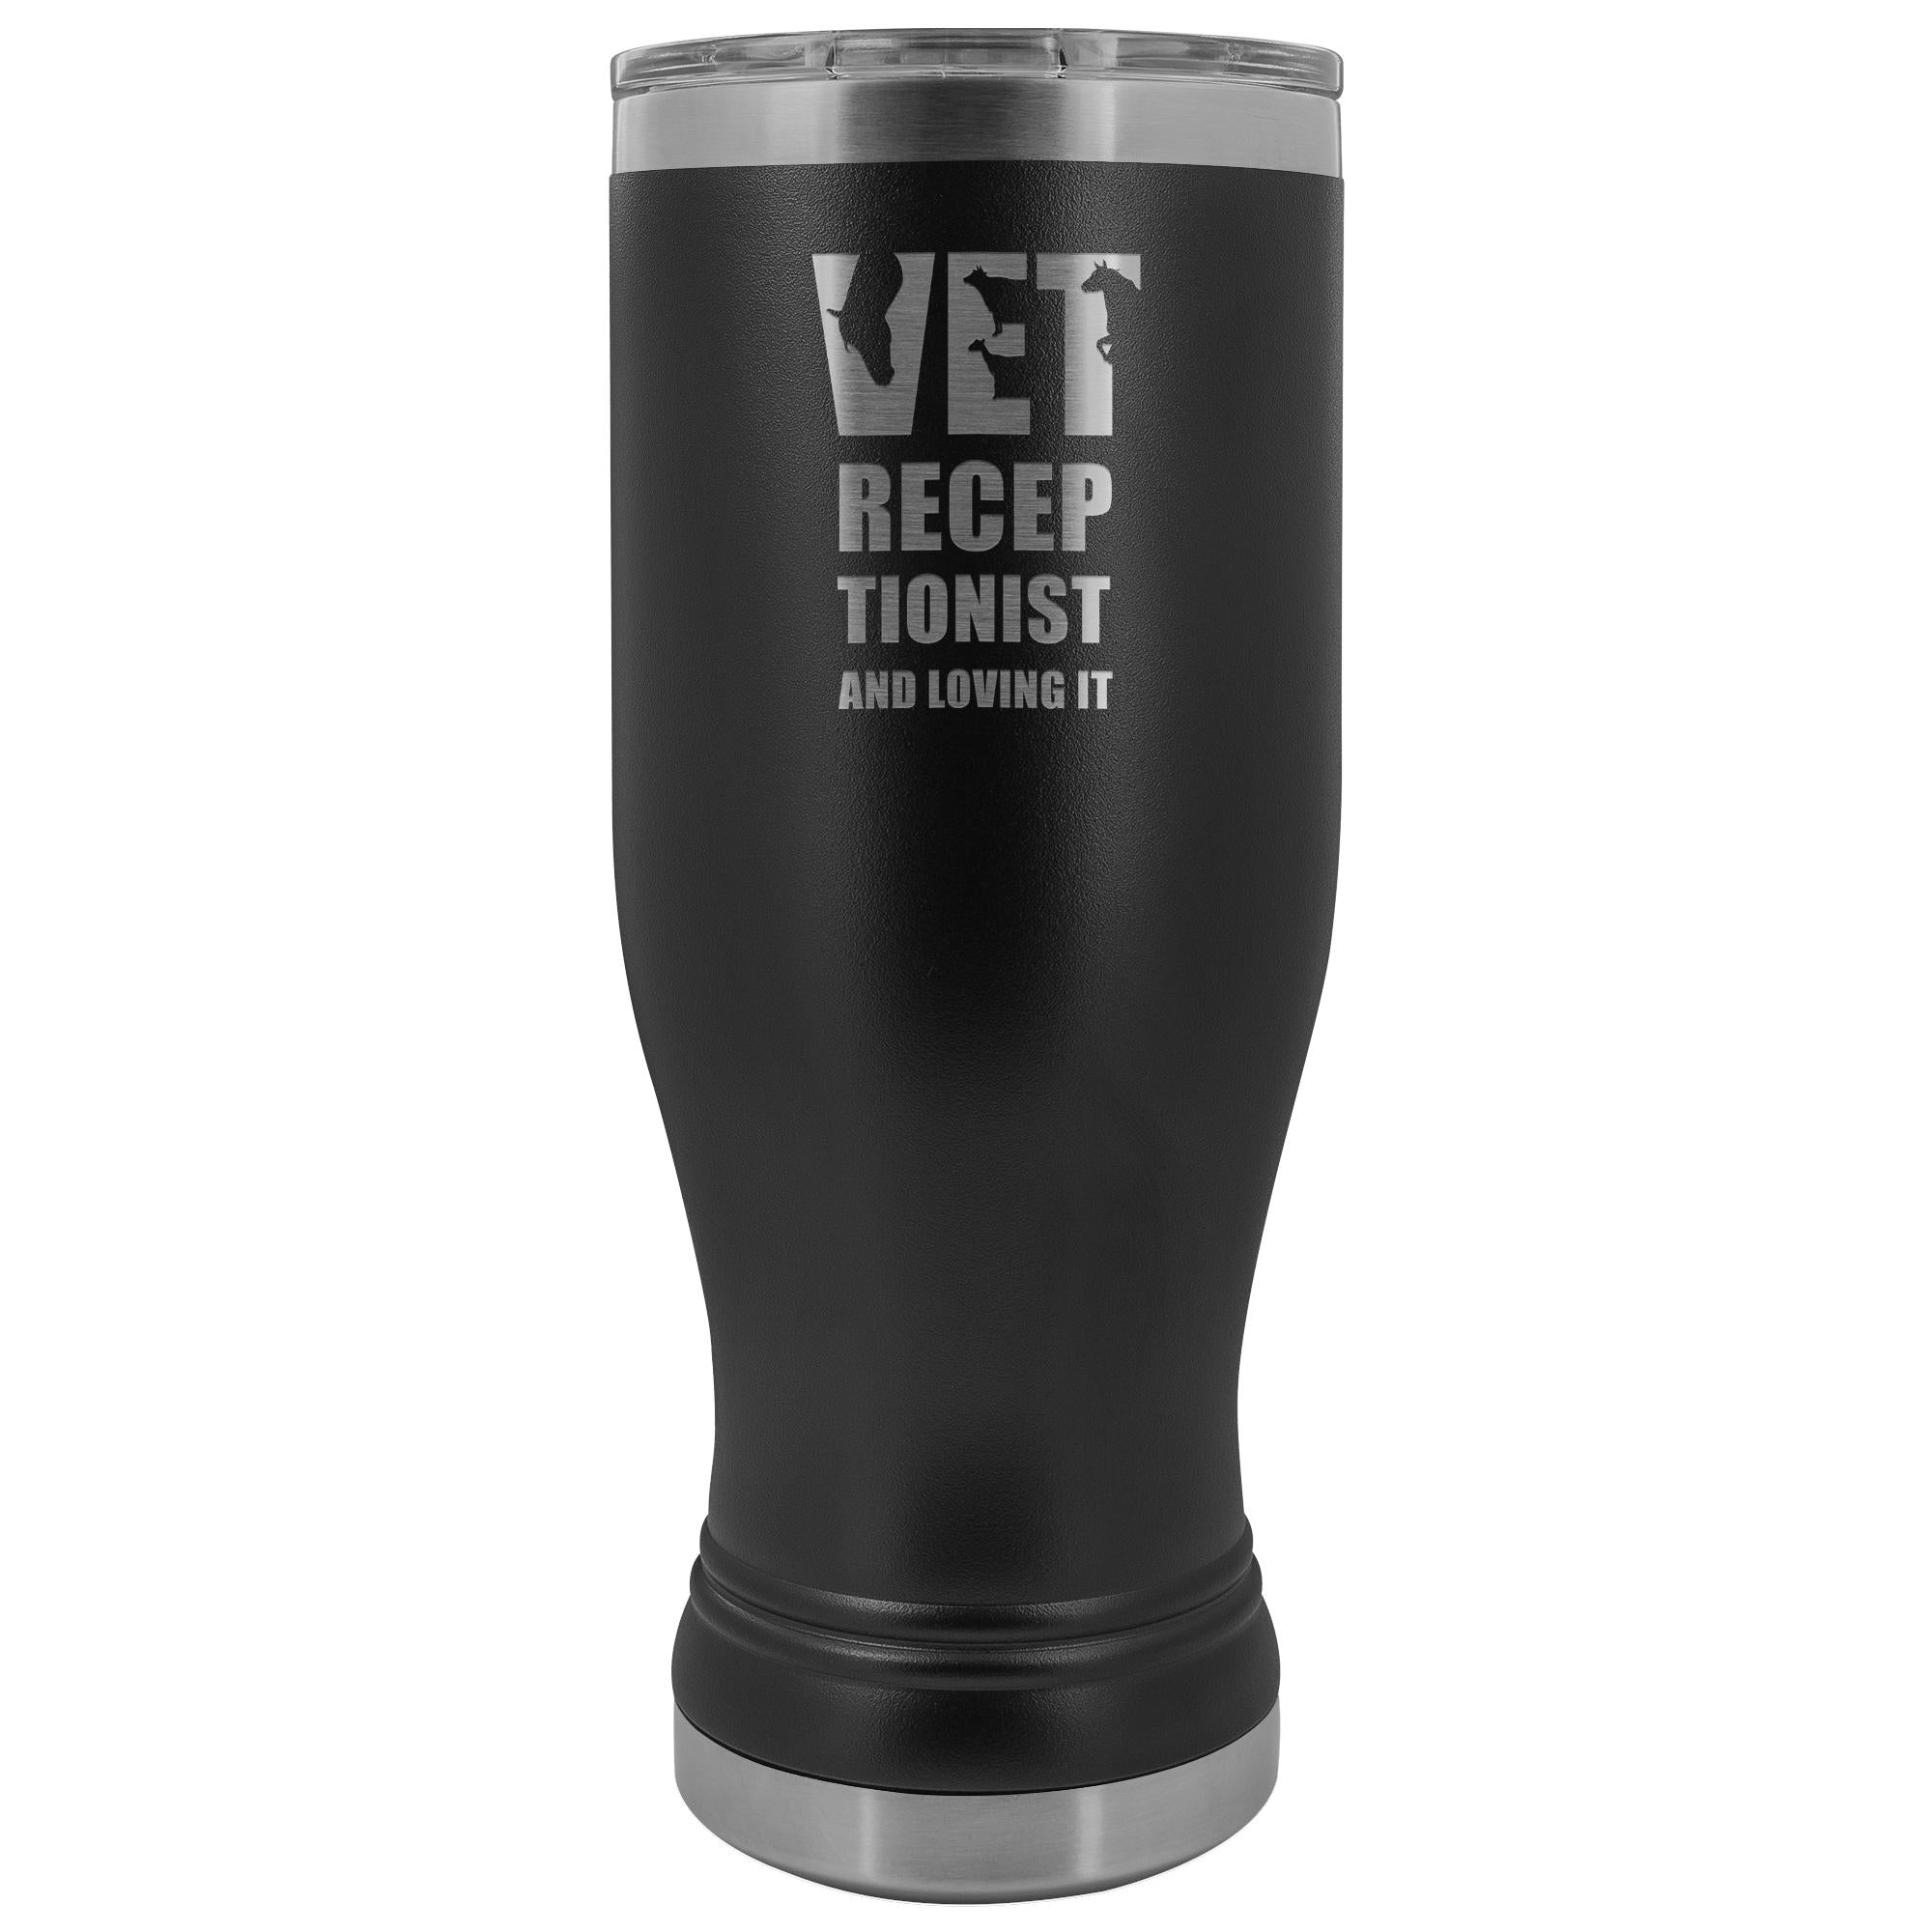 Vet Receptionist- Vet receptionists and loving it 20oz BOHO Vacuum Tumbler-Tumblers-I love Veterinary